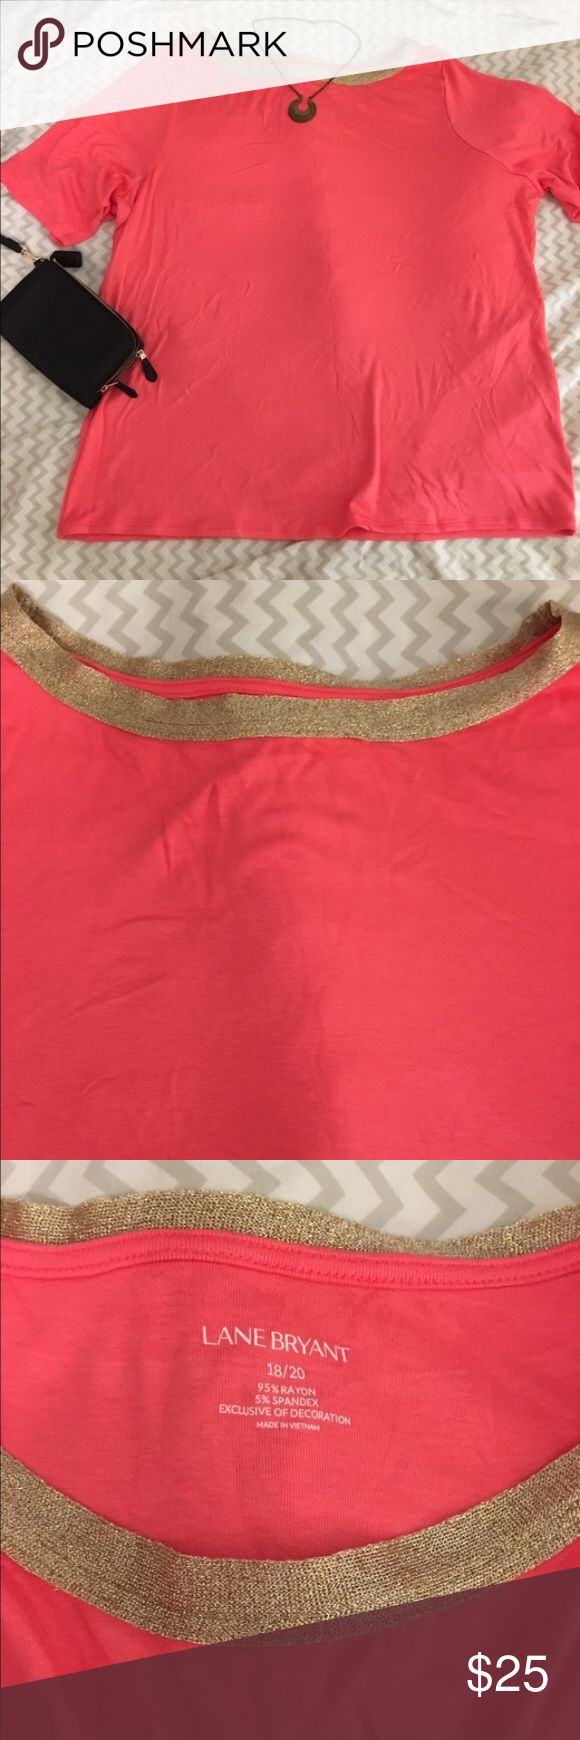 Lane Bryant Coral Shirt with Gold Trim Short sleeved coral shirt by Lane Bryant with gold trim. This is very soft and very flattering material. Can be dressed up or down. Size 18/20- new without tags. Never worn. Lane Bryant Tops Tees - Short Sleeve